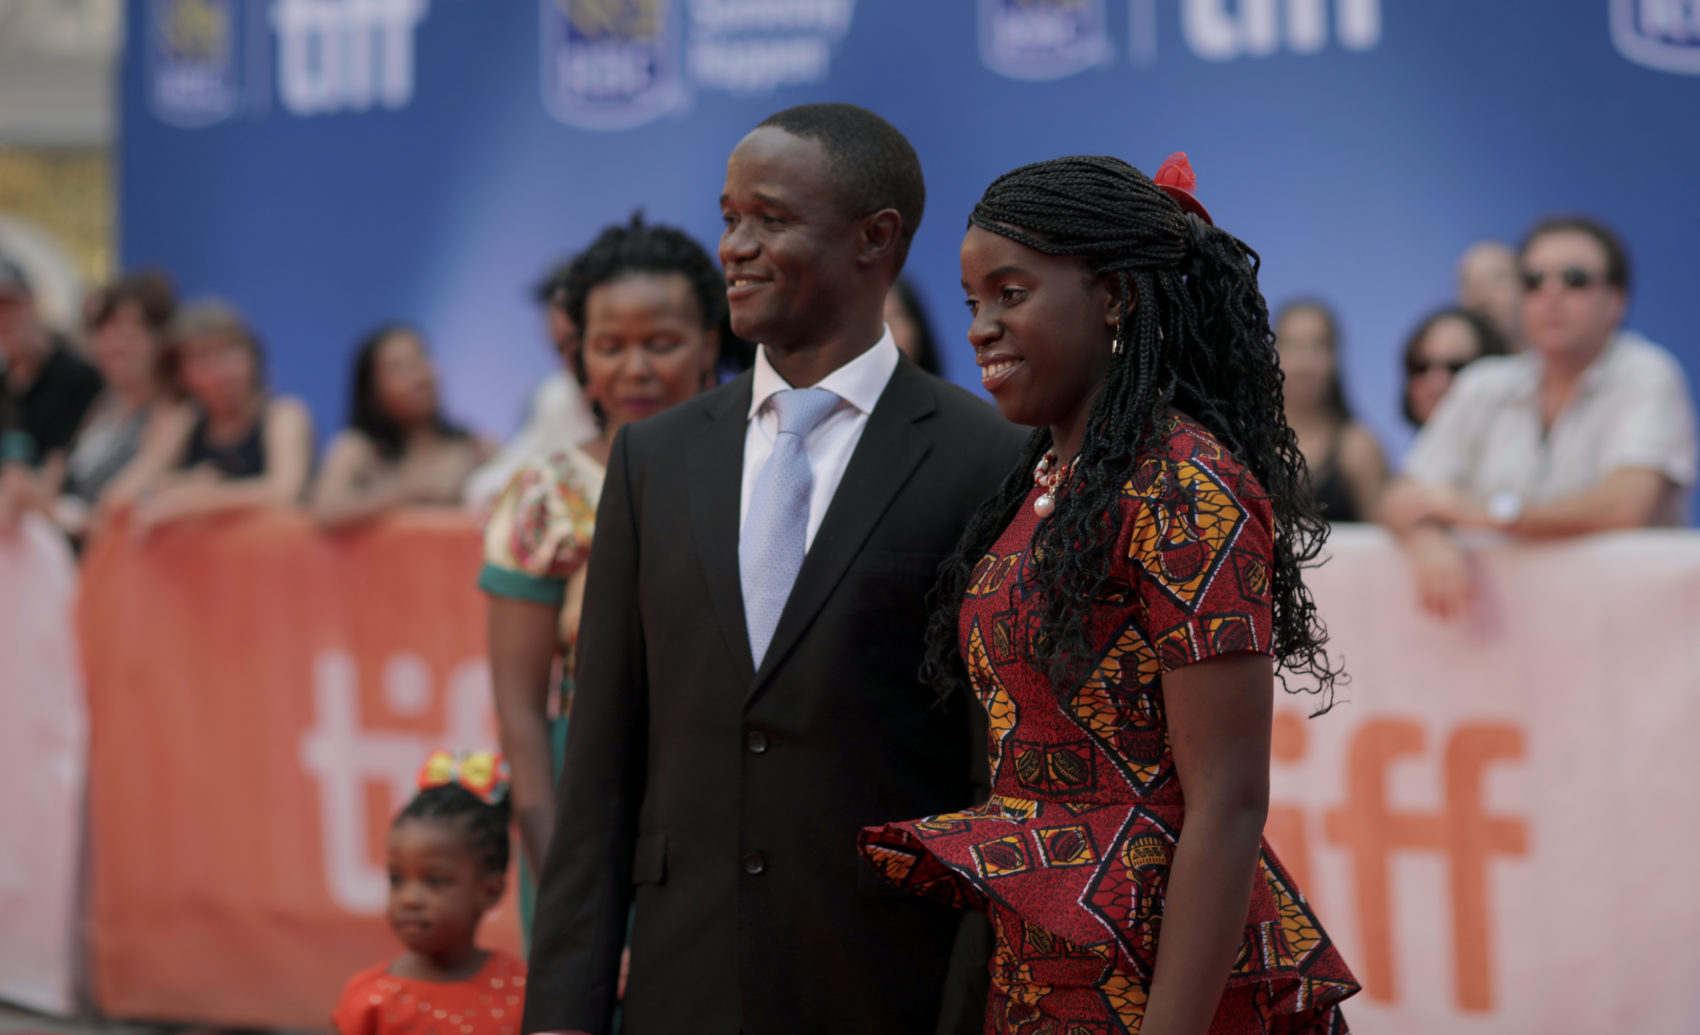 Phiona Mutesi and her coach, Robert Katende, at the Toronto International Film Festival in 2016. (Jesse Herzog/Invision/AP)